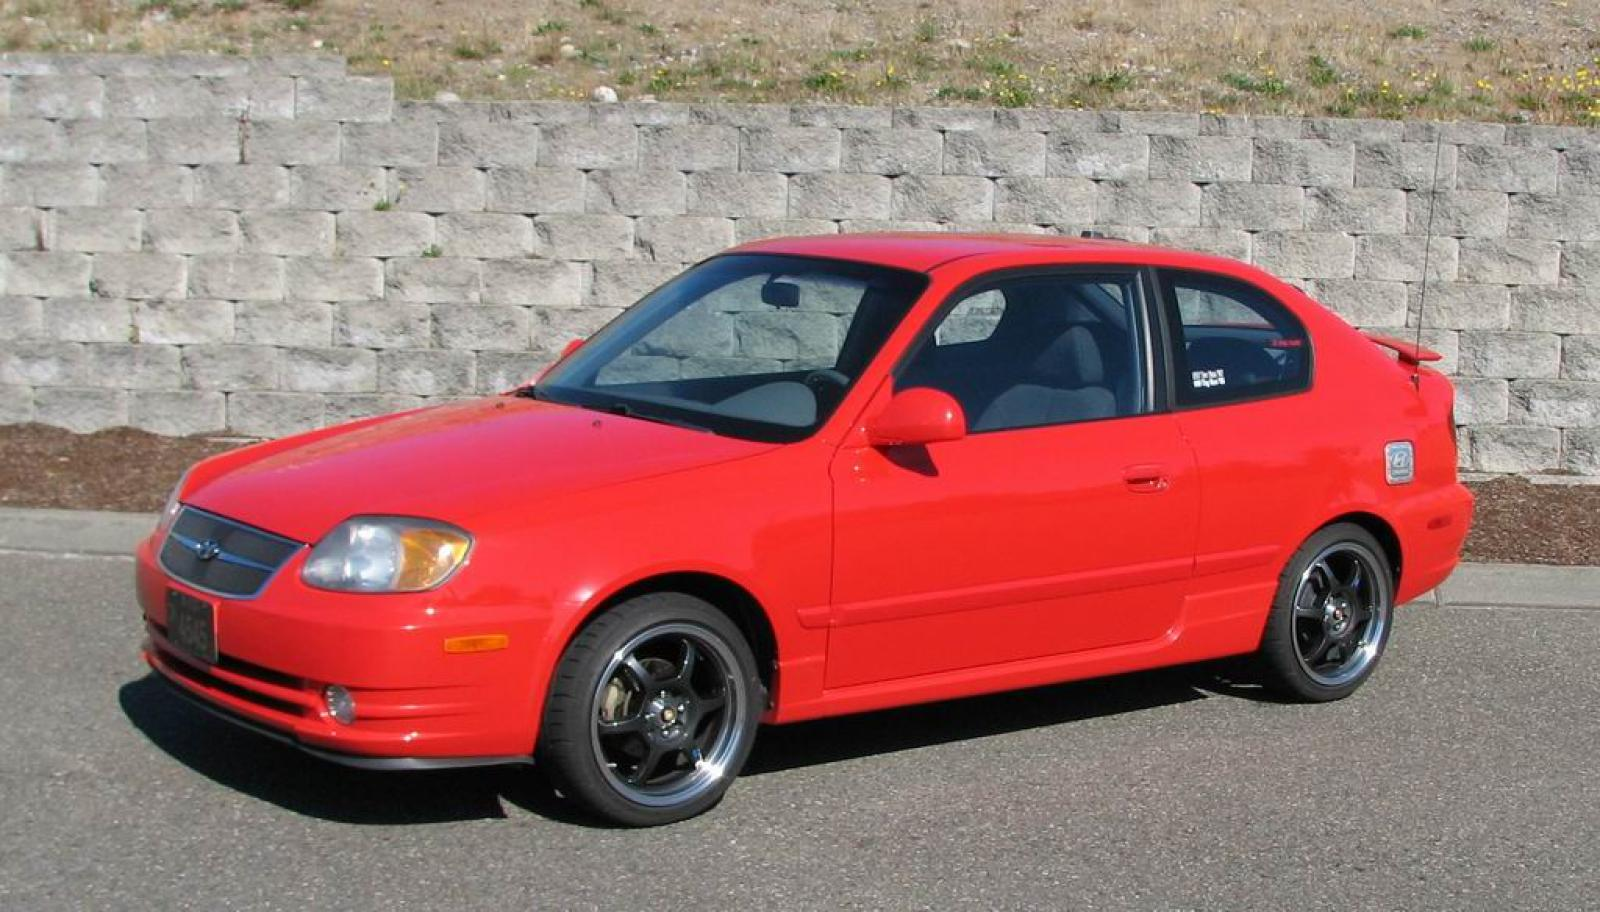 2003 Hyundai Accent Information And Photos Zomb Drive